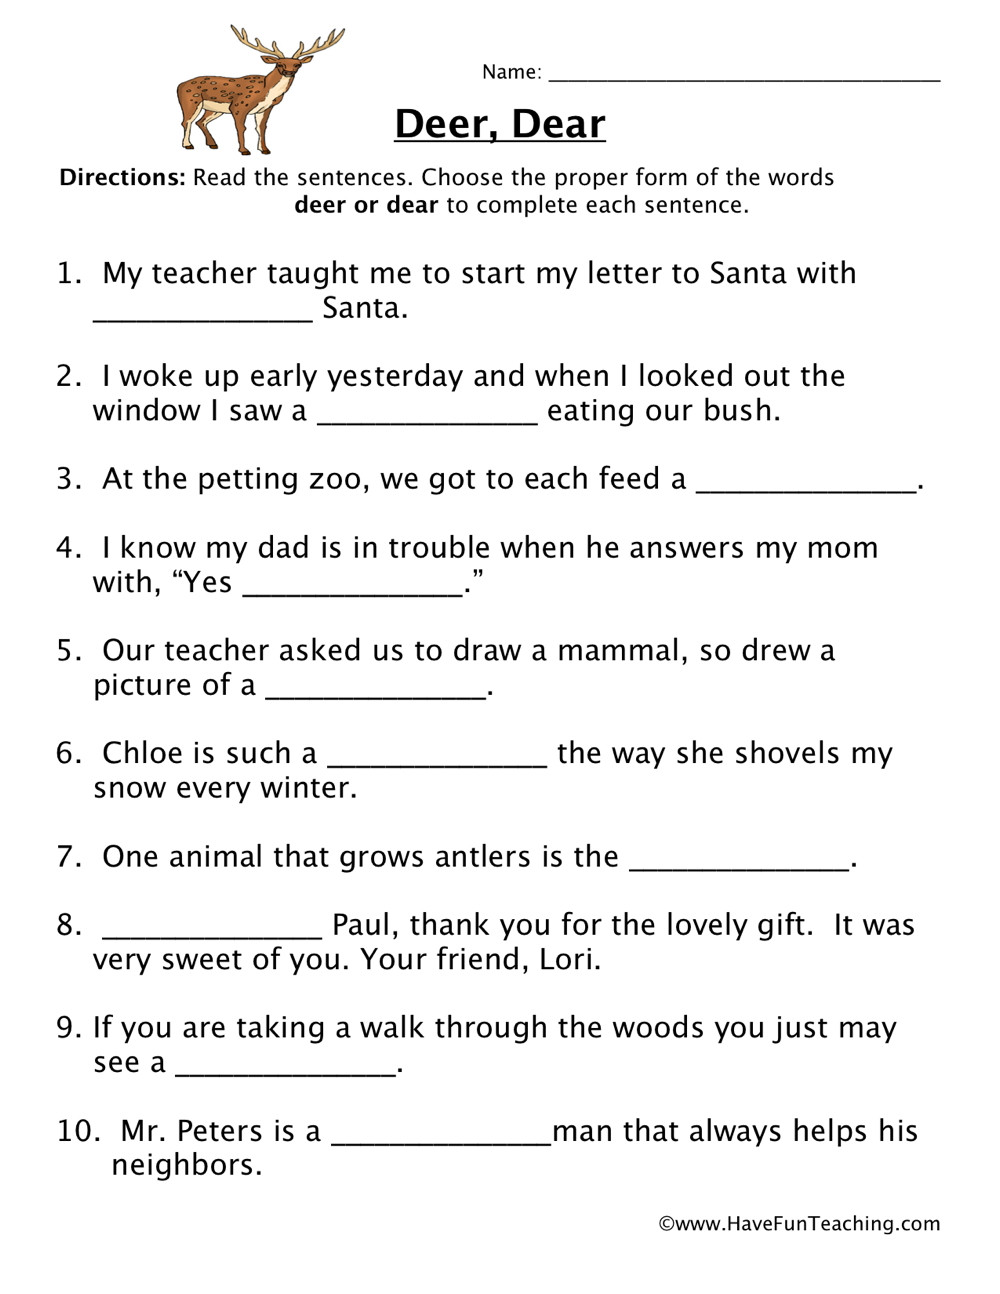 Homophones Worksheet 5th Grade Deer Dear Homophones Worksheet